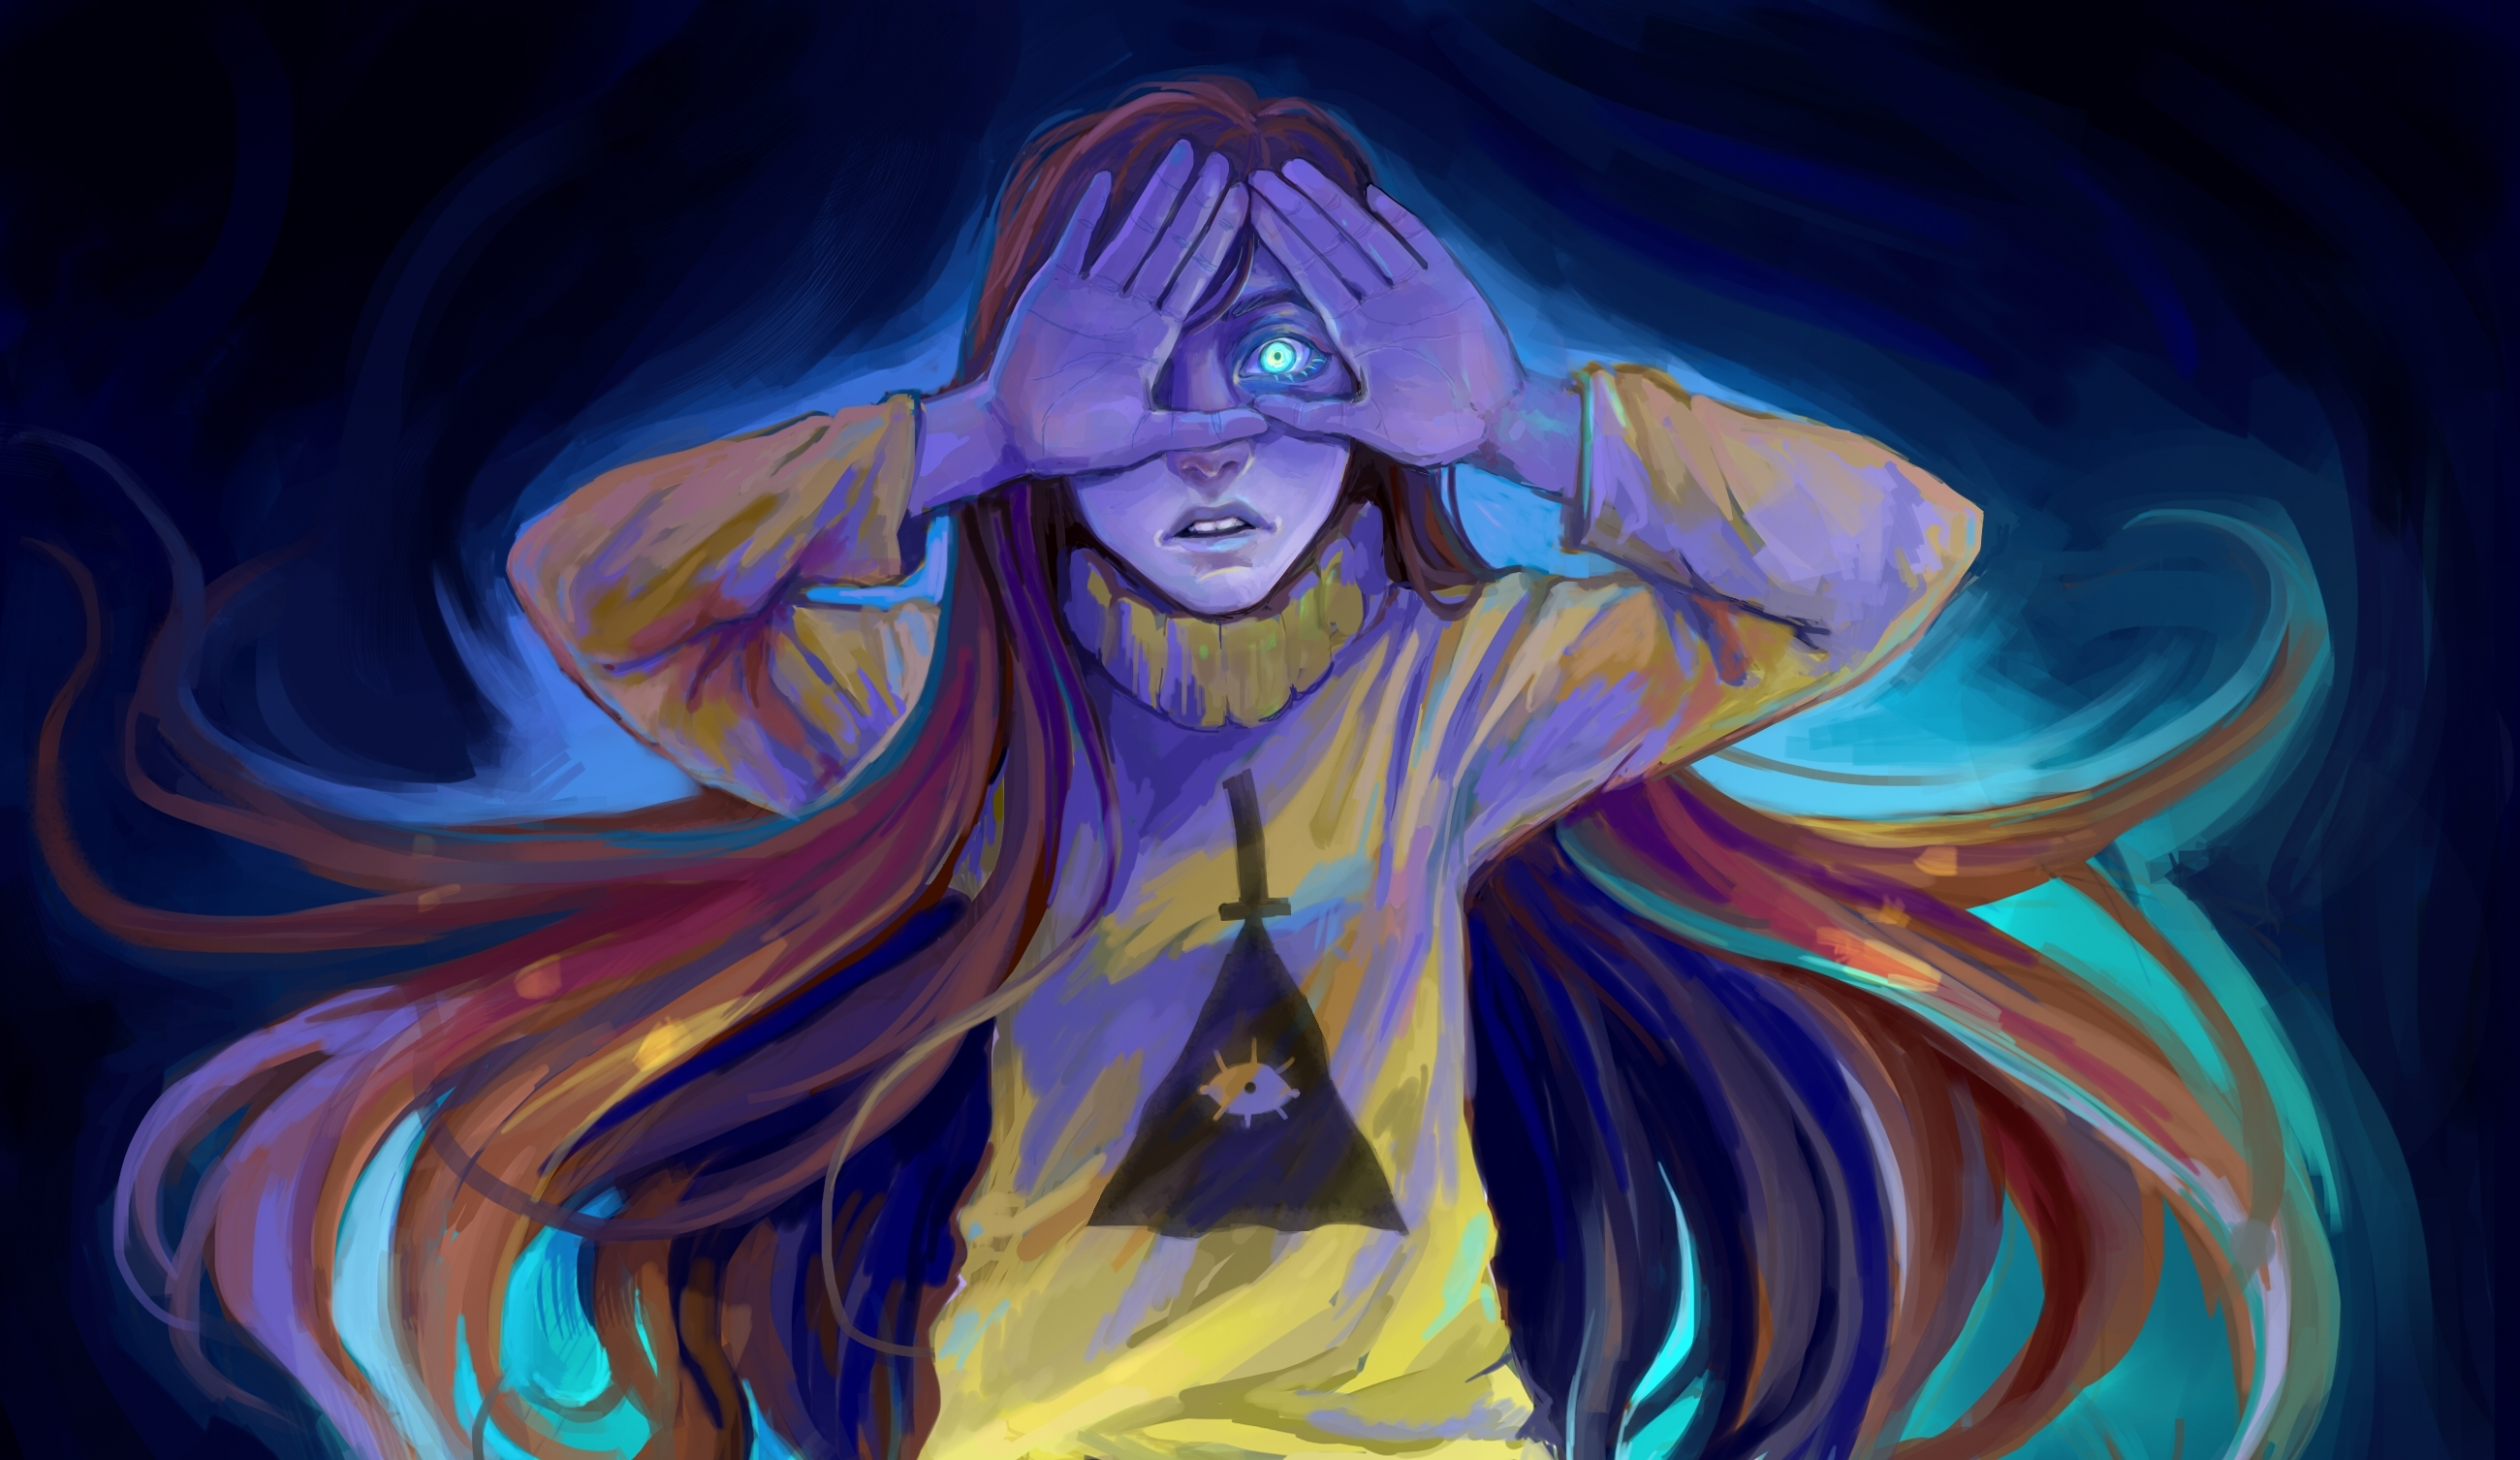 Gravity Falls Bill Cipher Wallpaper Hd Women Hd Wallpaper Background Image 2600x1506 Id